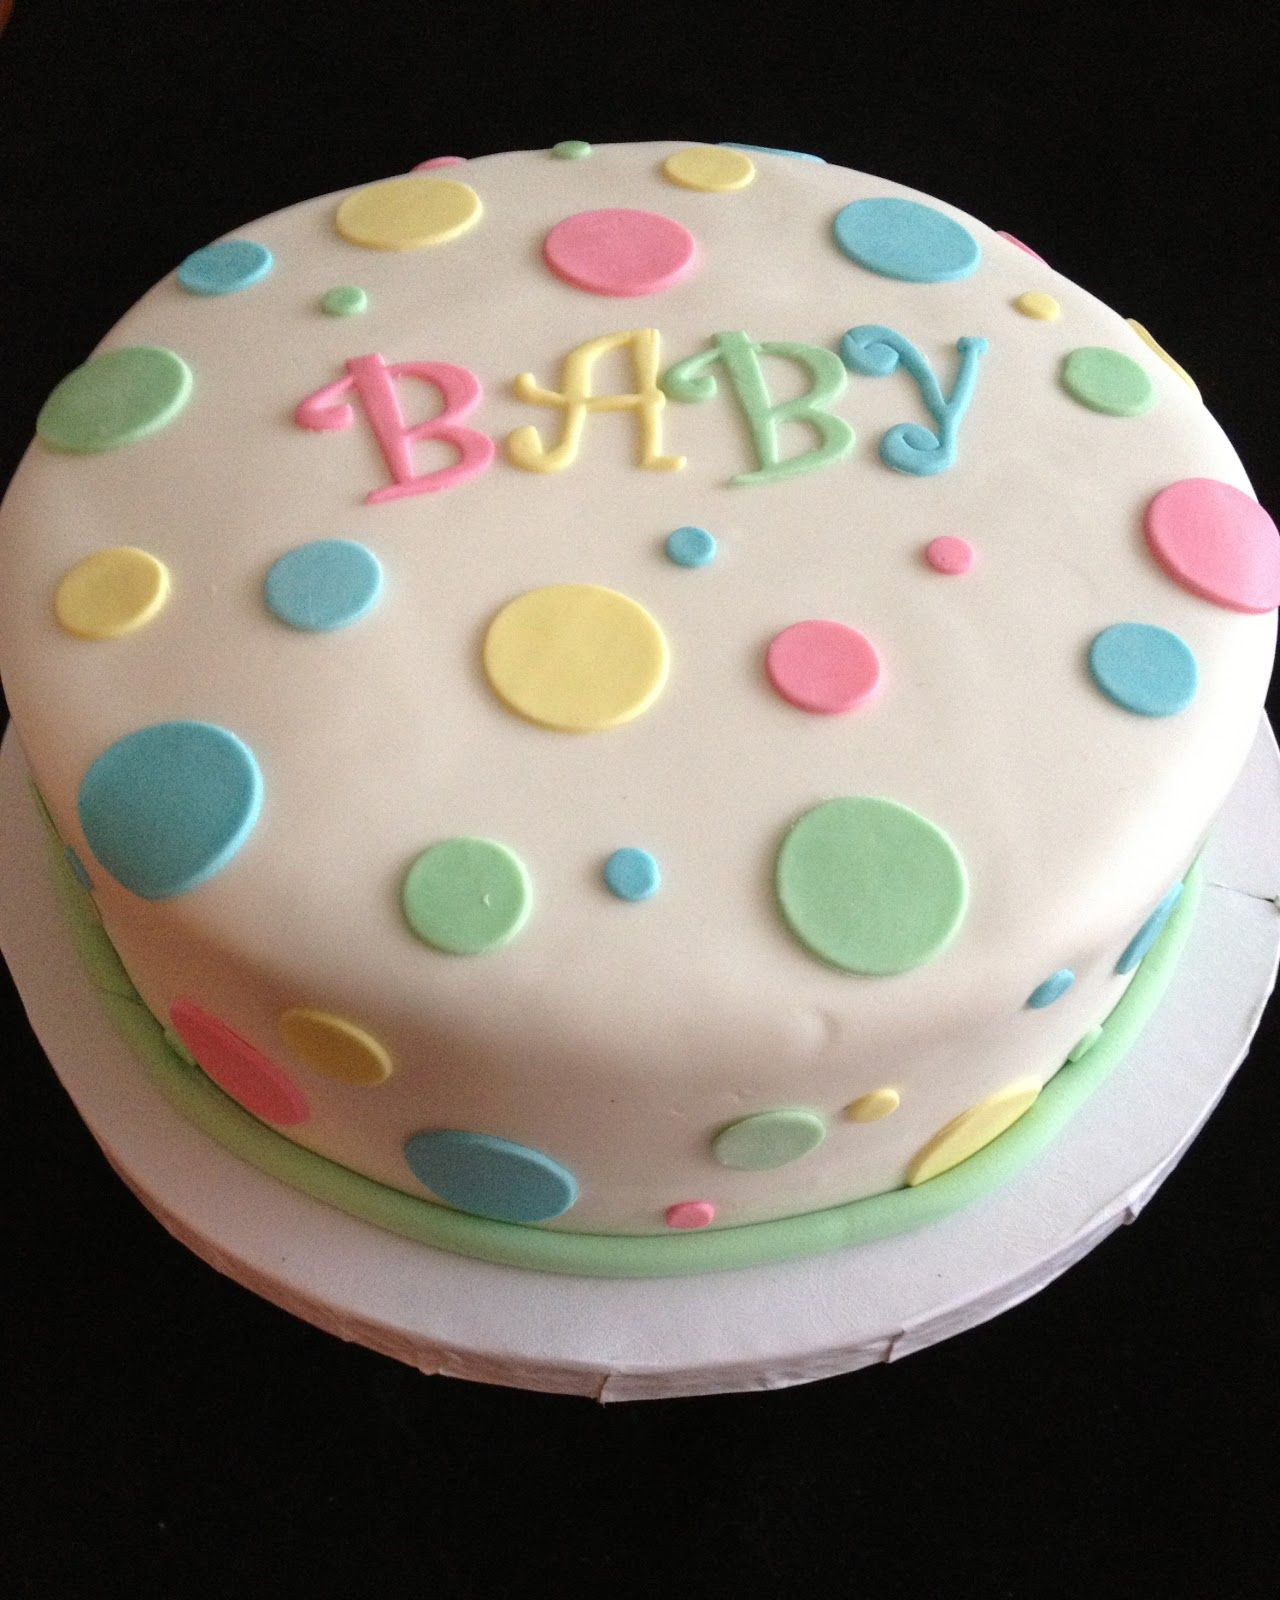 Pin on EASY TO MAKE BABY SHOWER CAKES